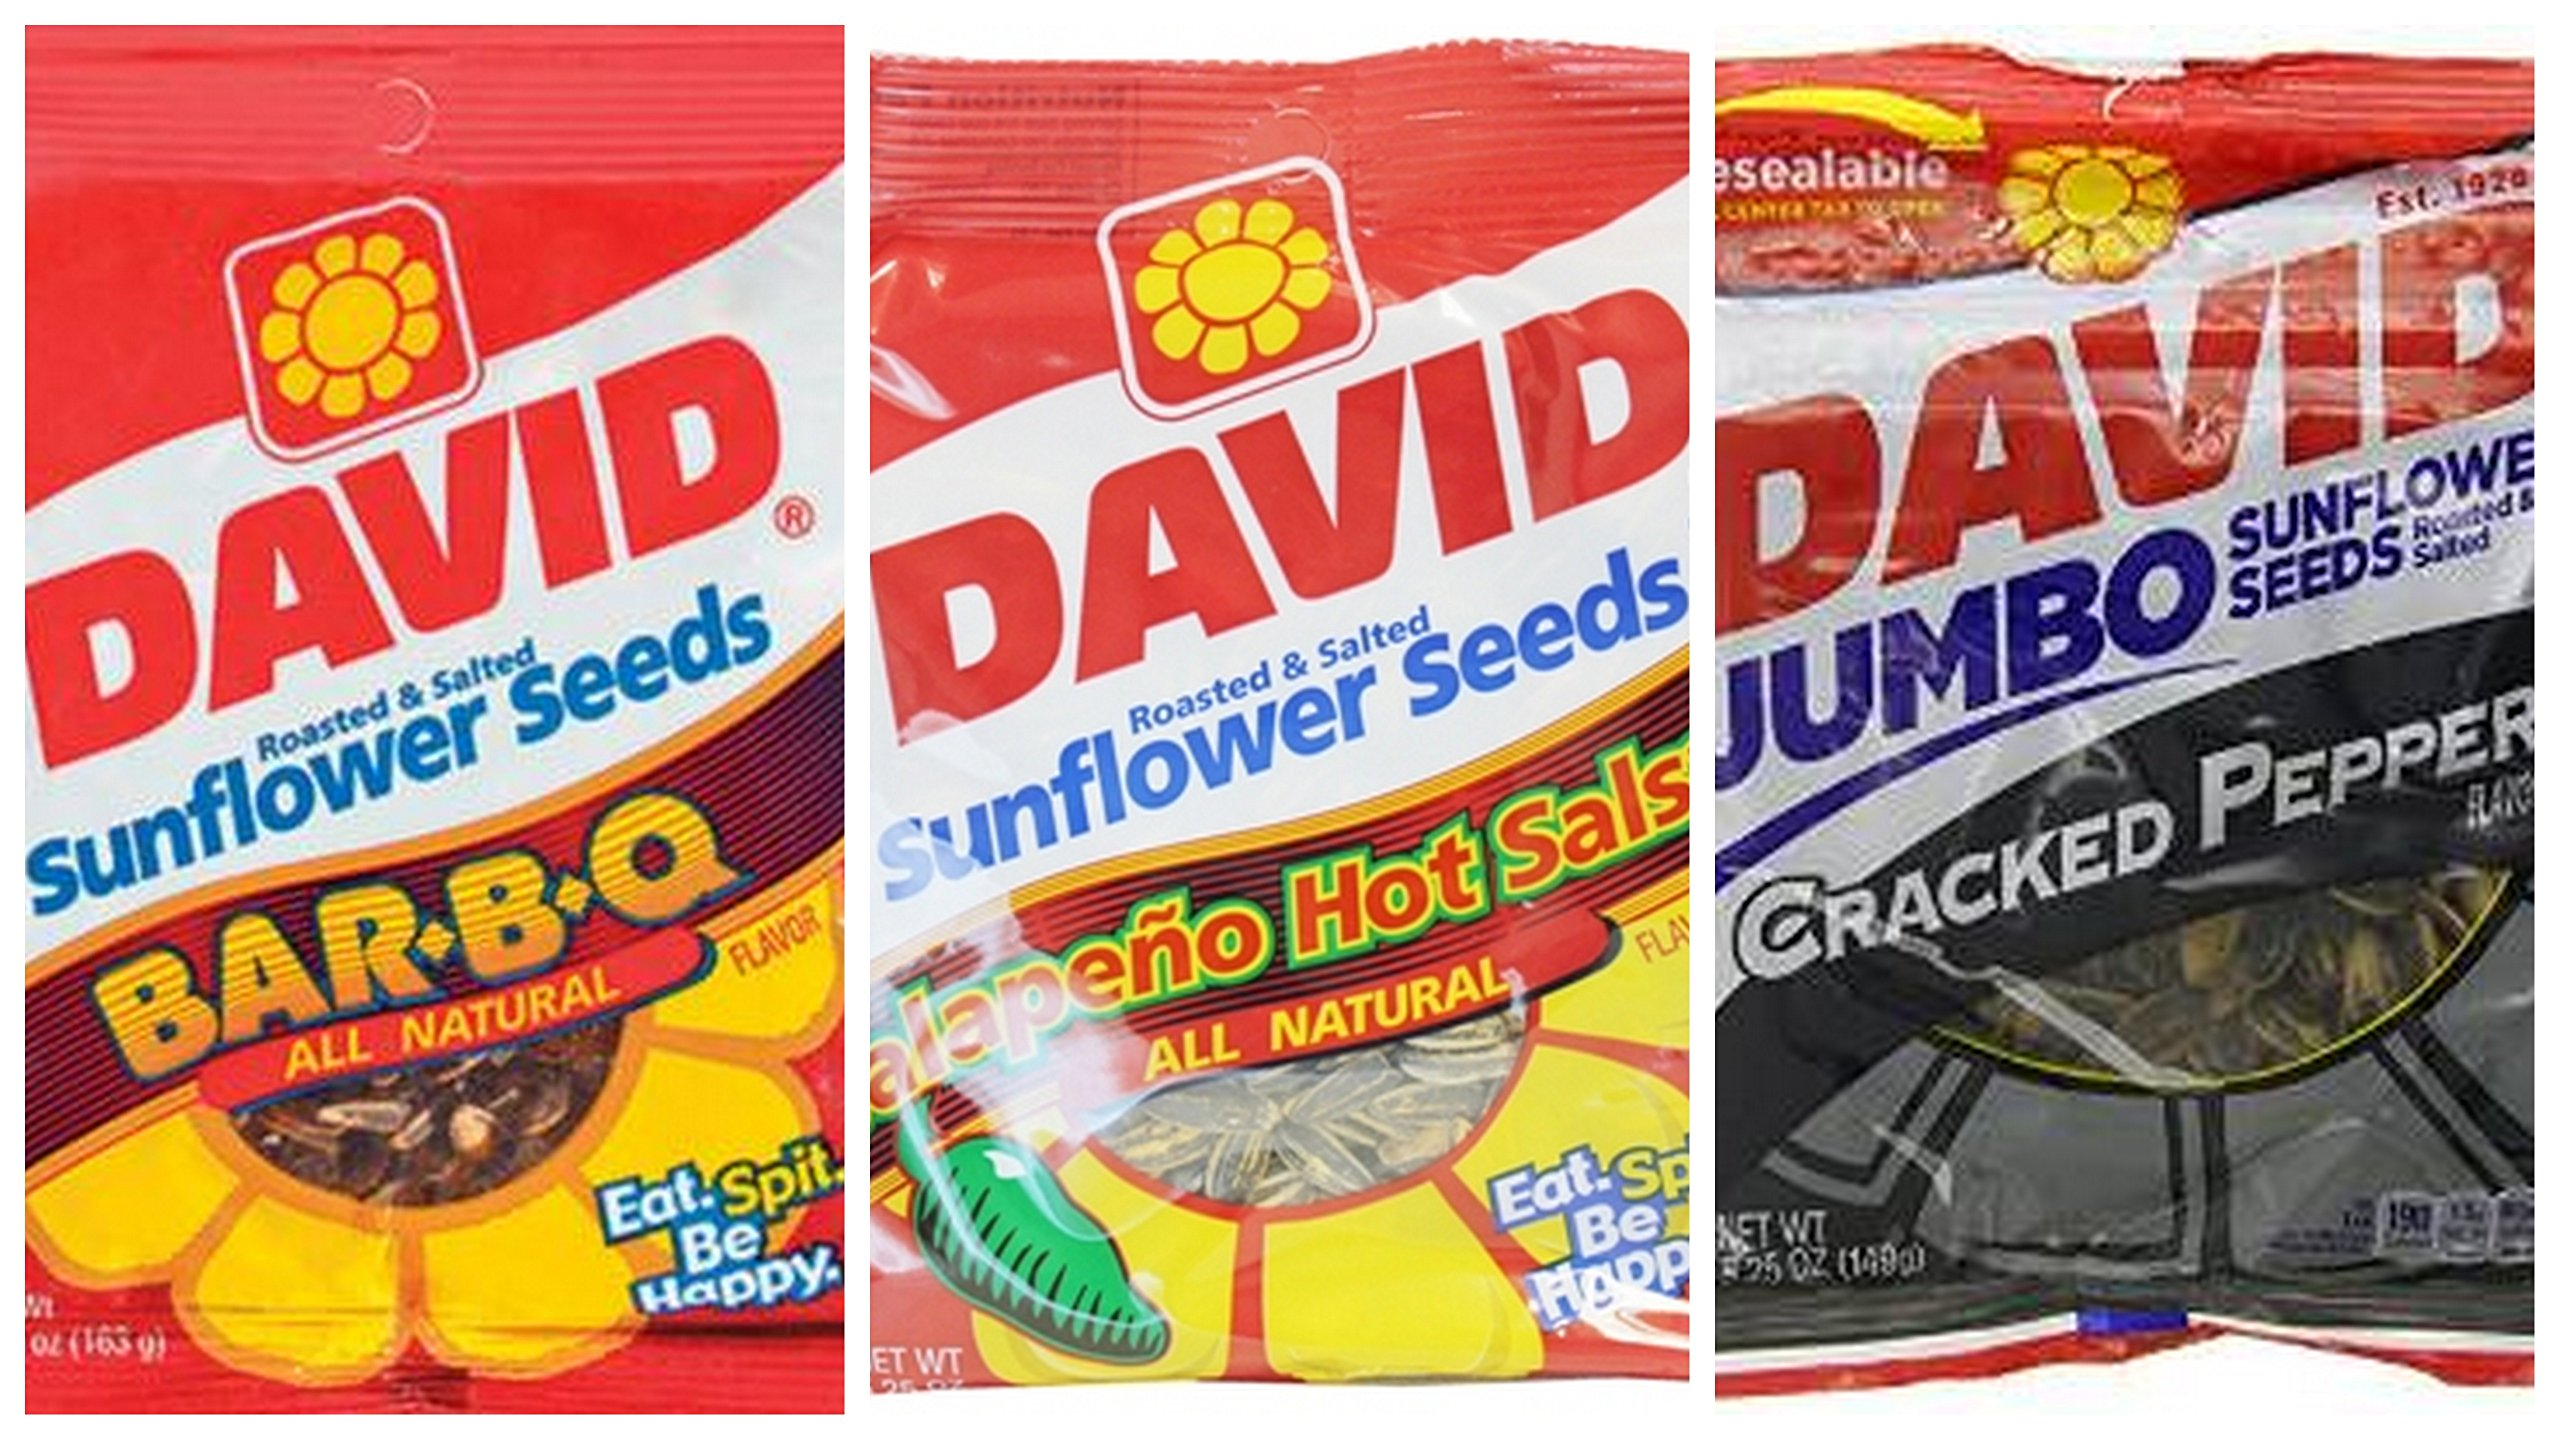 David Sunflower Seeds 5.25 oz Variety Pack (Pack of 7) 3 Bags Cracked Pepper Flavor + 2 Bags BBQ Flavor + 2 Bags Jalapeno Hot Salsa Flavor by DAVID Seeds